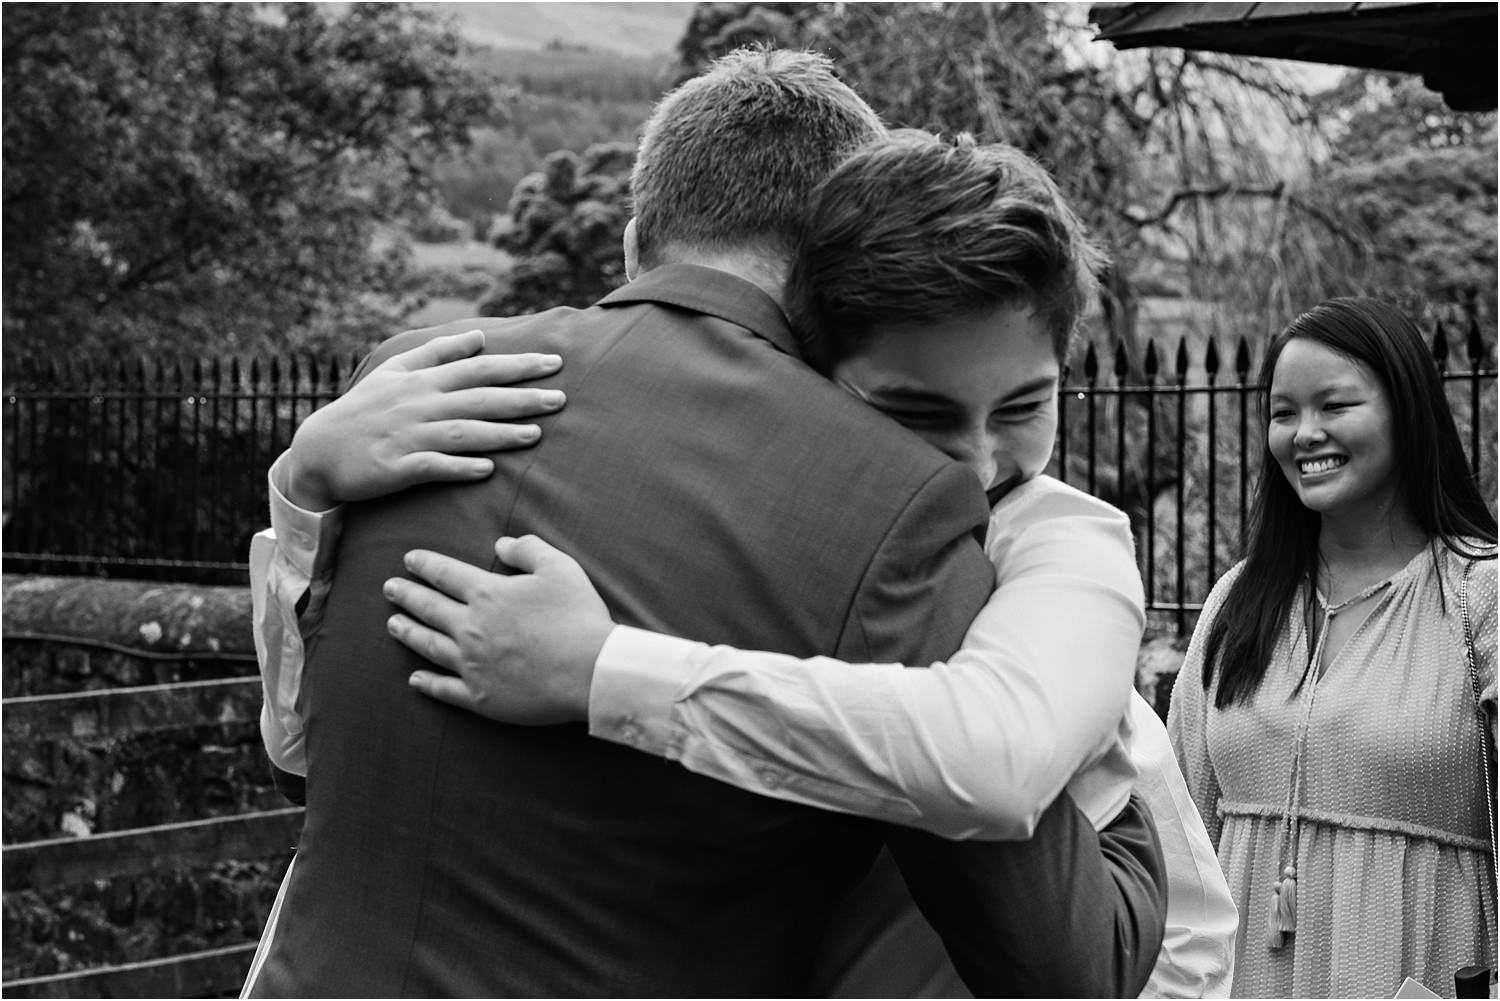 Young guest hugs bridegroom after wedding ceremony in Trough of Bowland, Lancashire